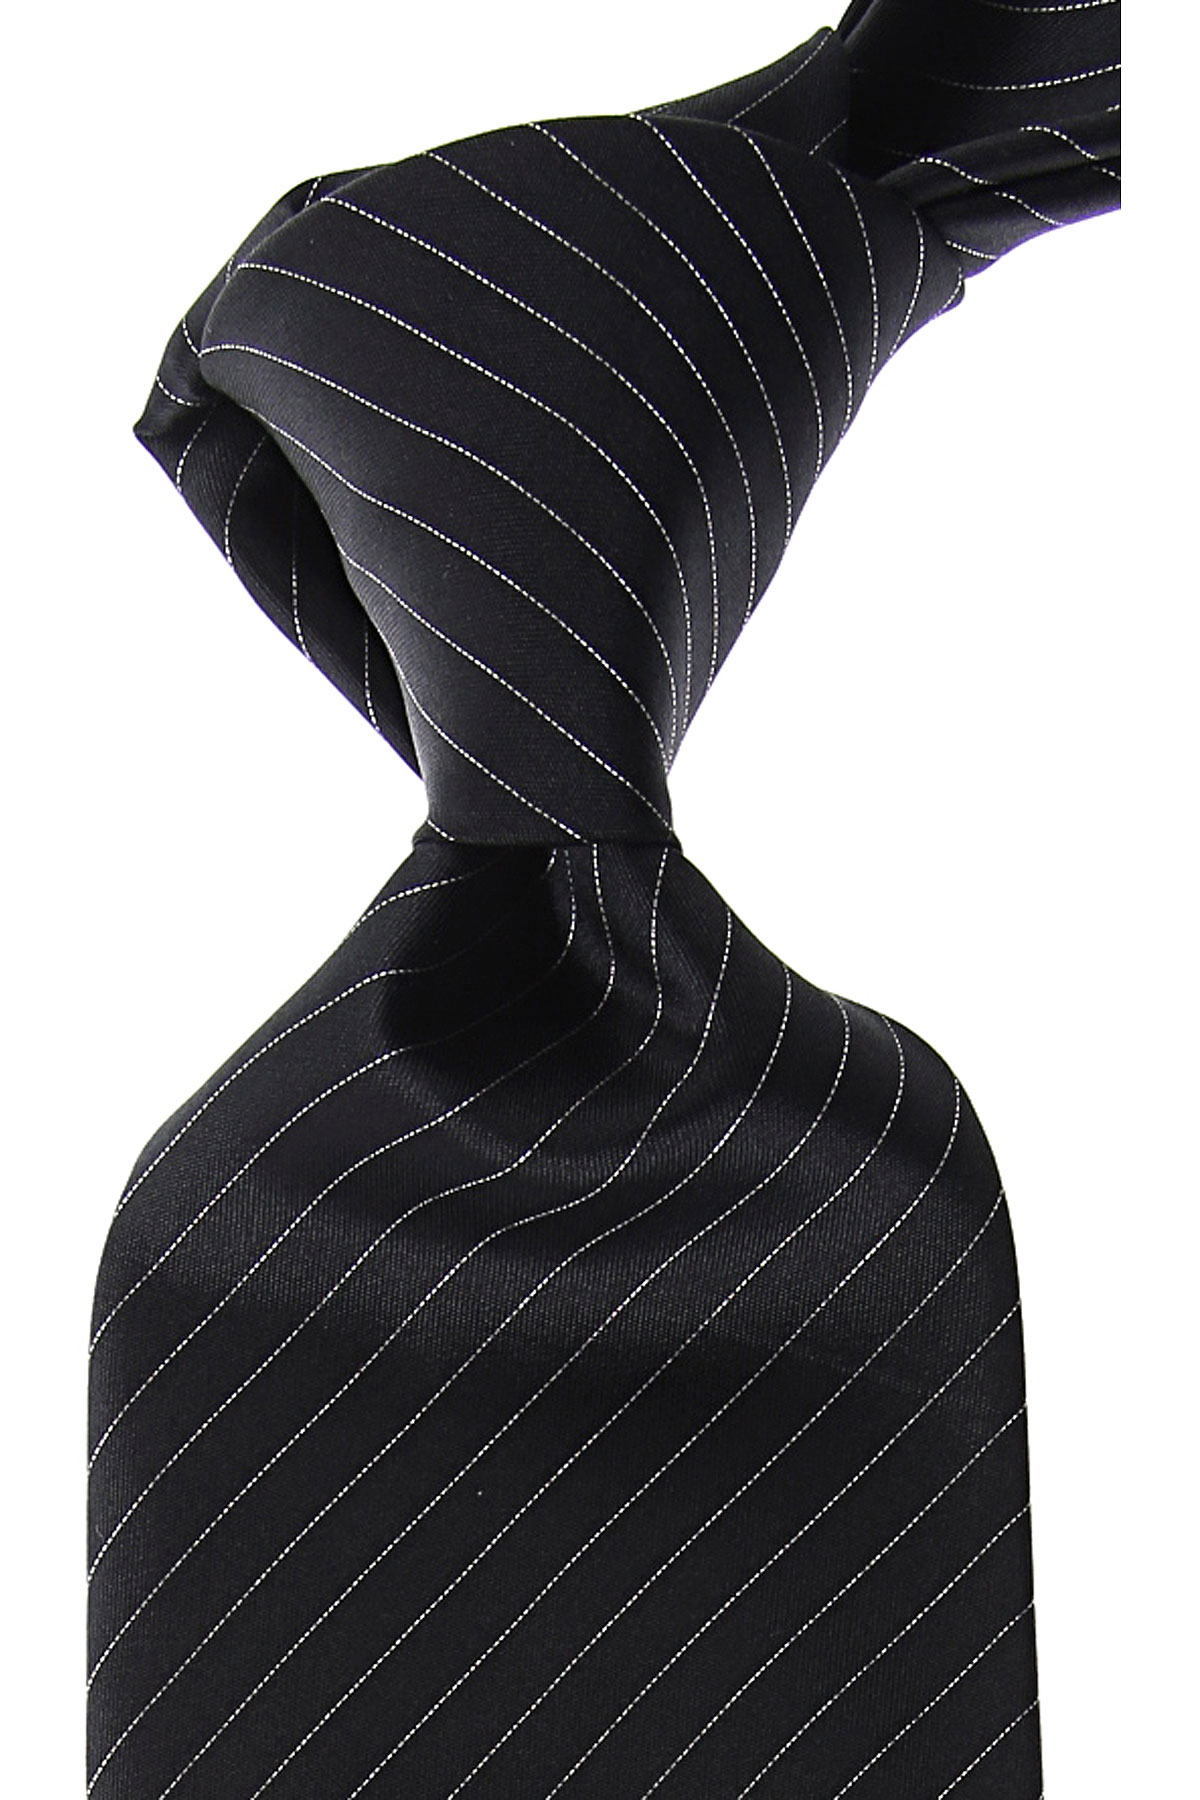 Canali Ties On Sale, Black, Silk, 2019